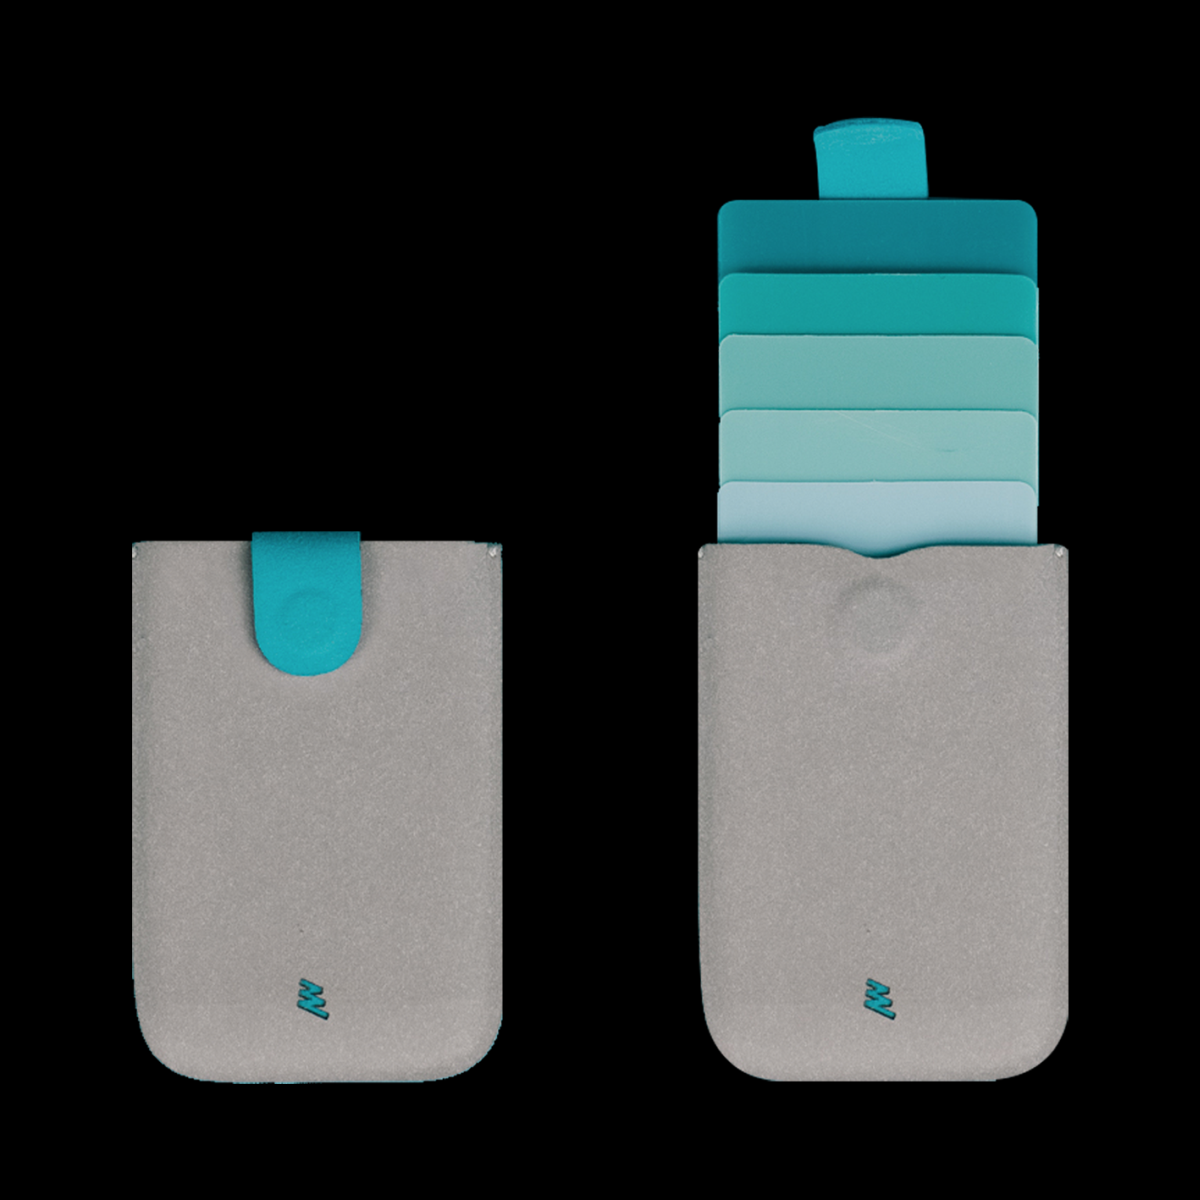 dax Cascading Pull Tab Wallet V2.0 - Grey / Turquoise